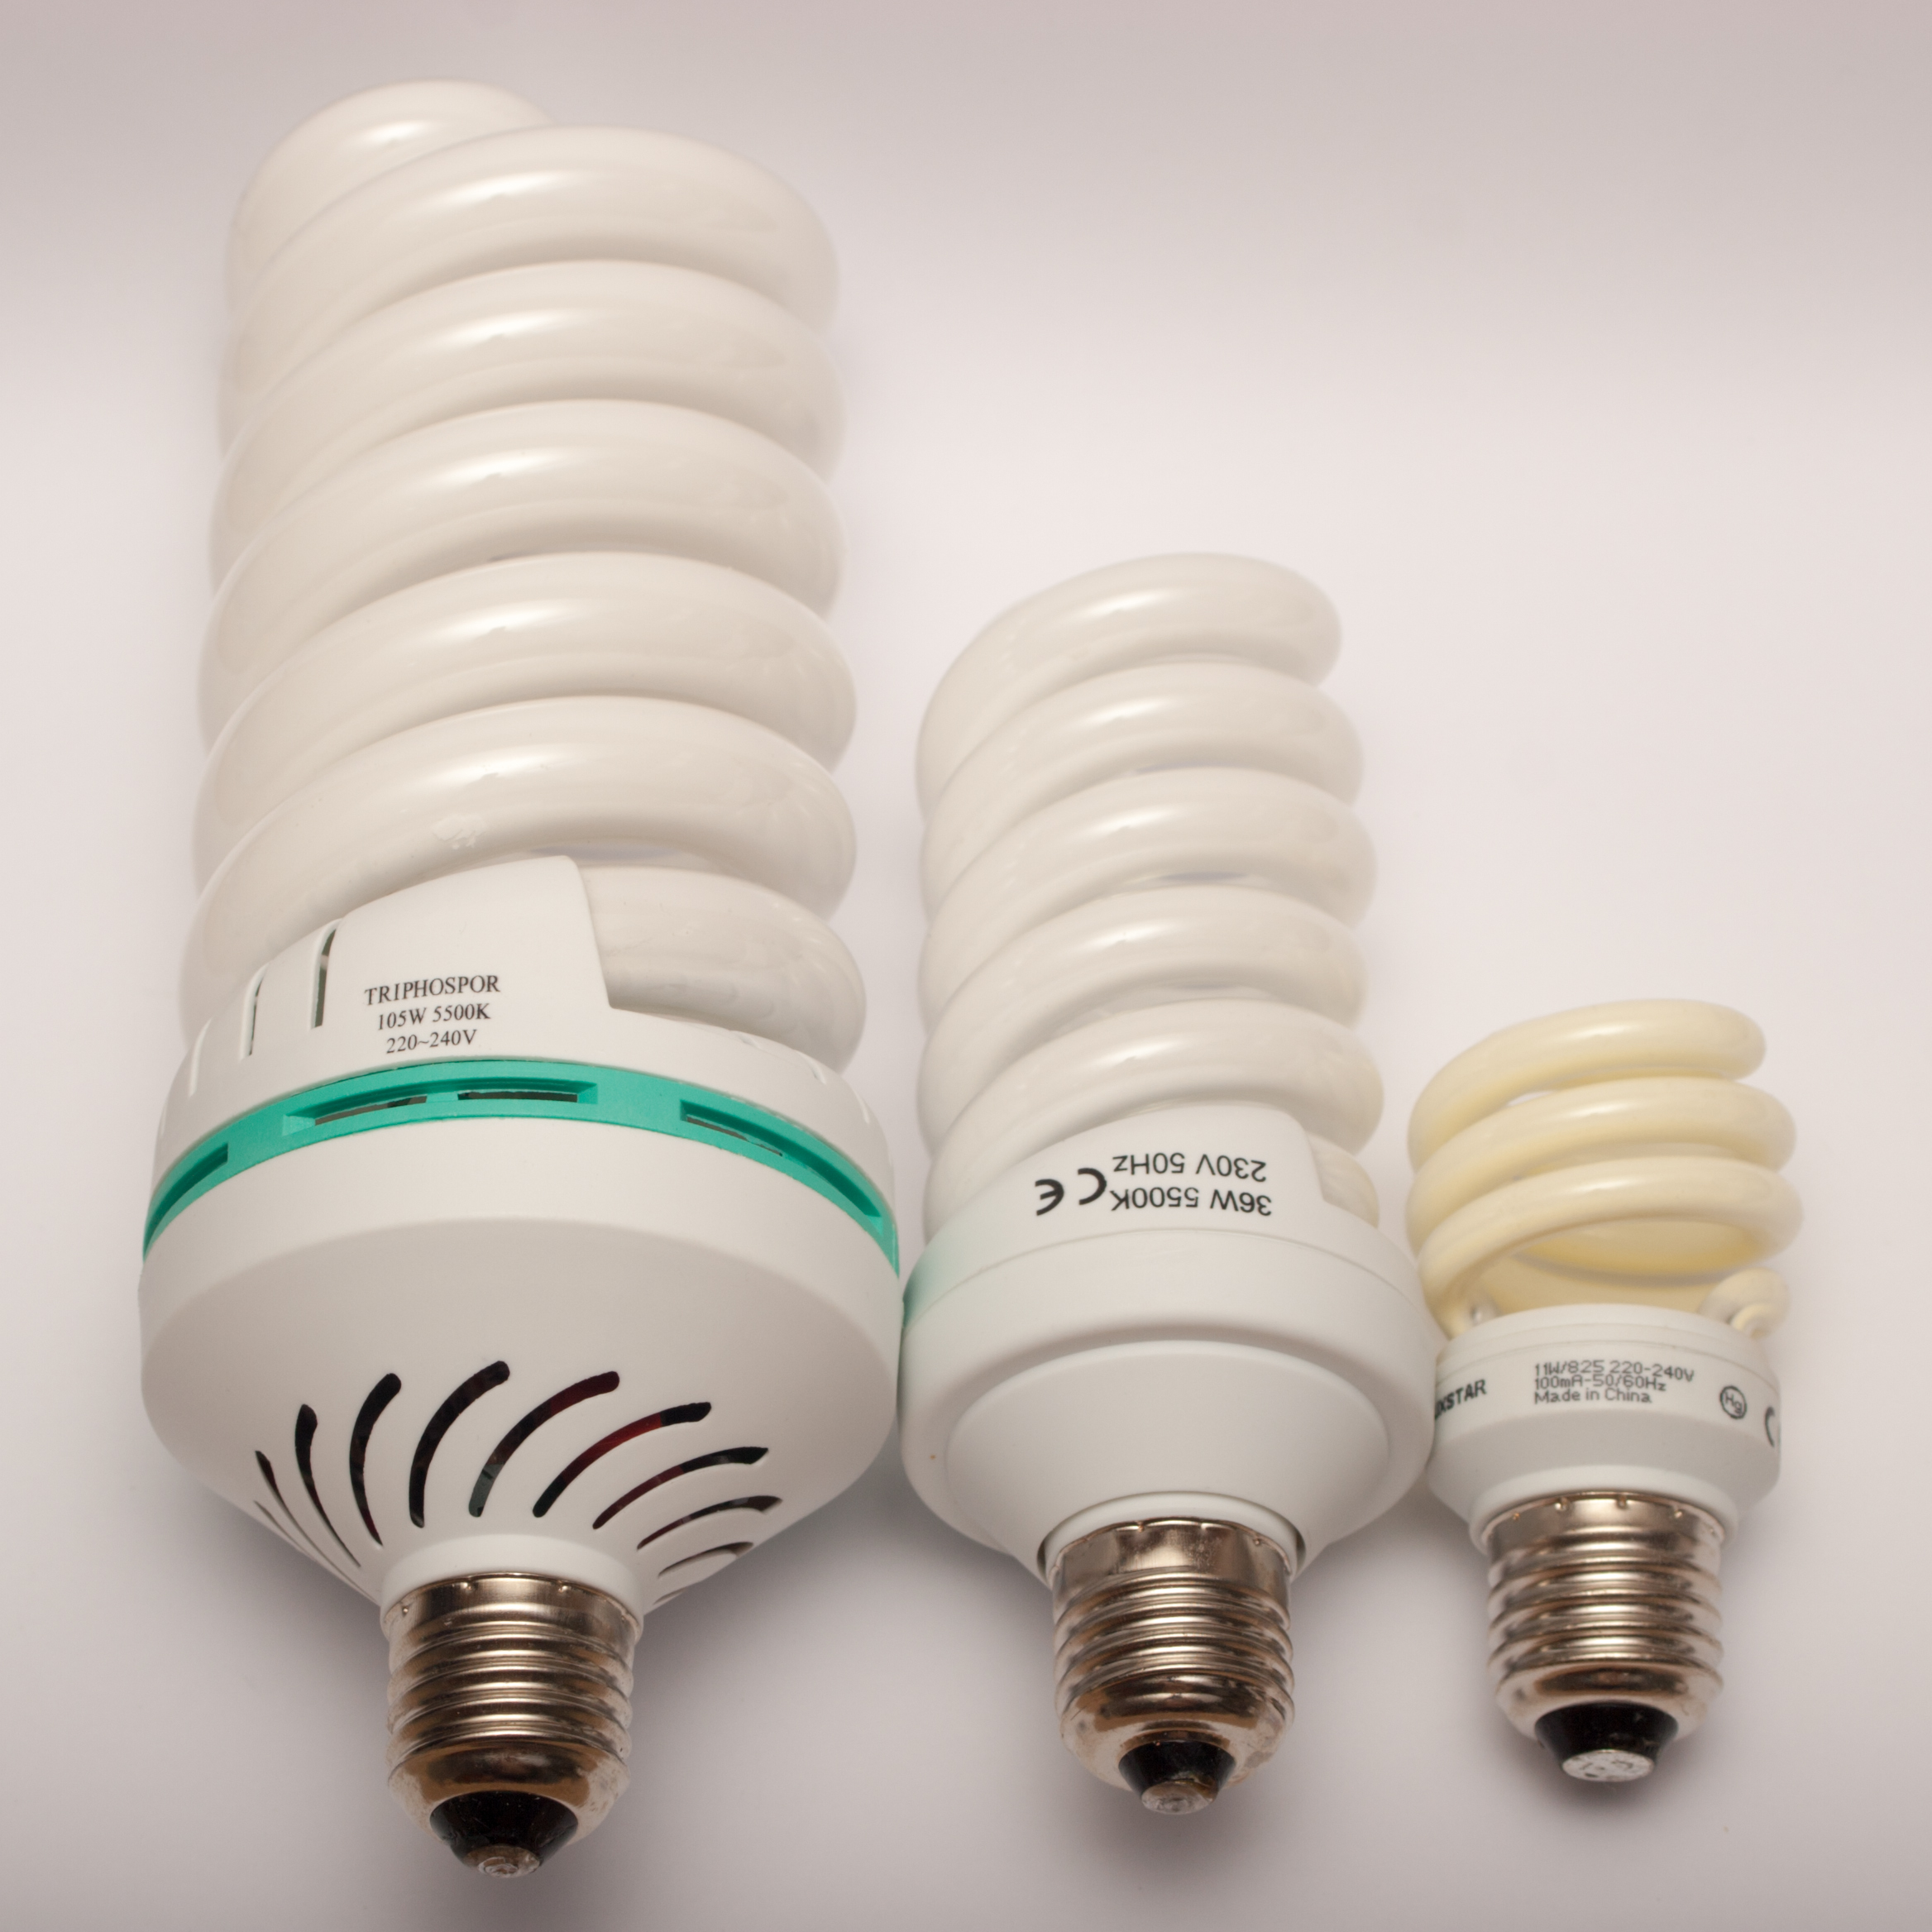 Compact fluorescent light bulbs 105W 36W 11W.jpg